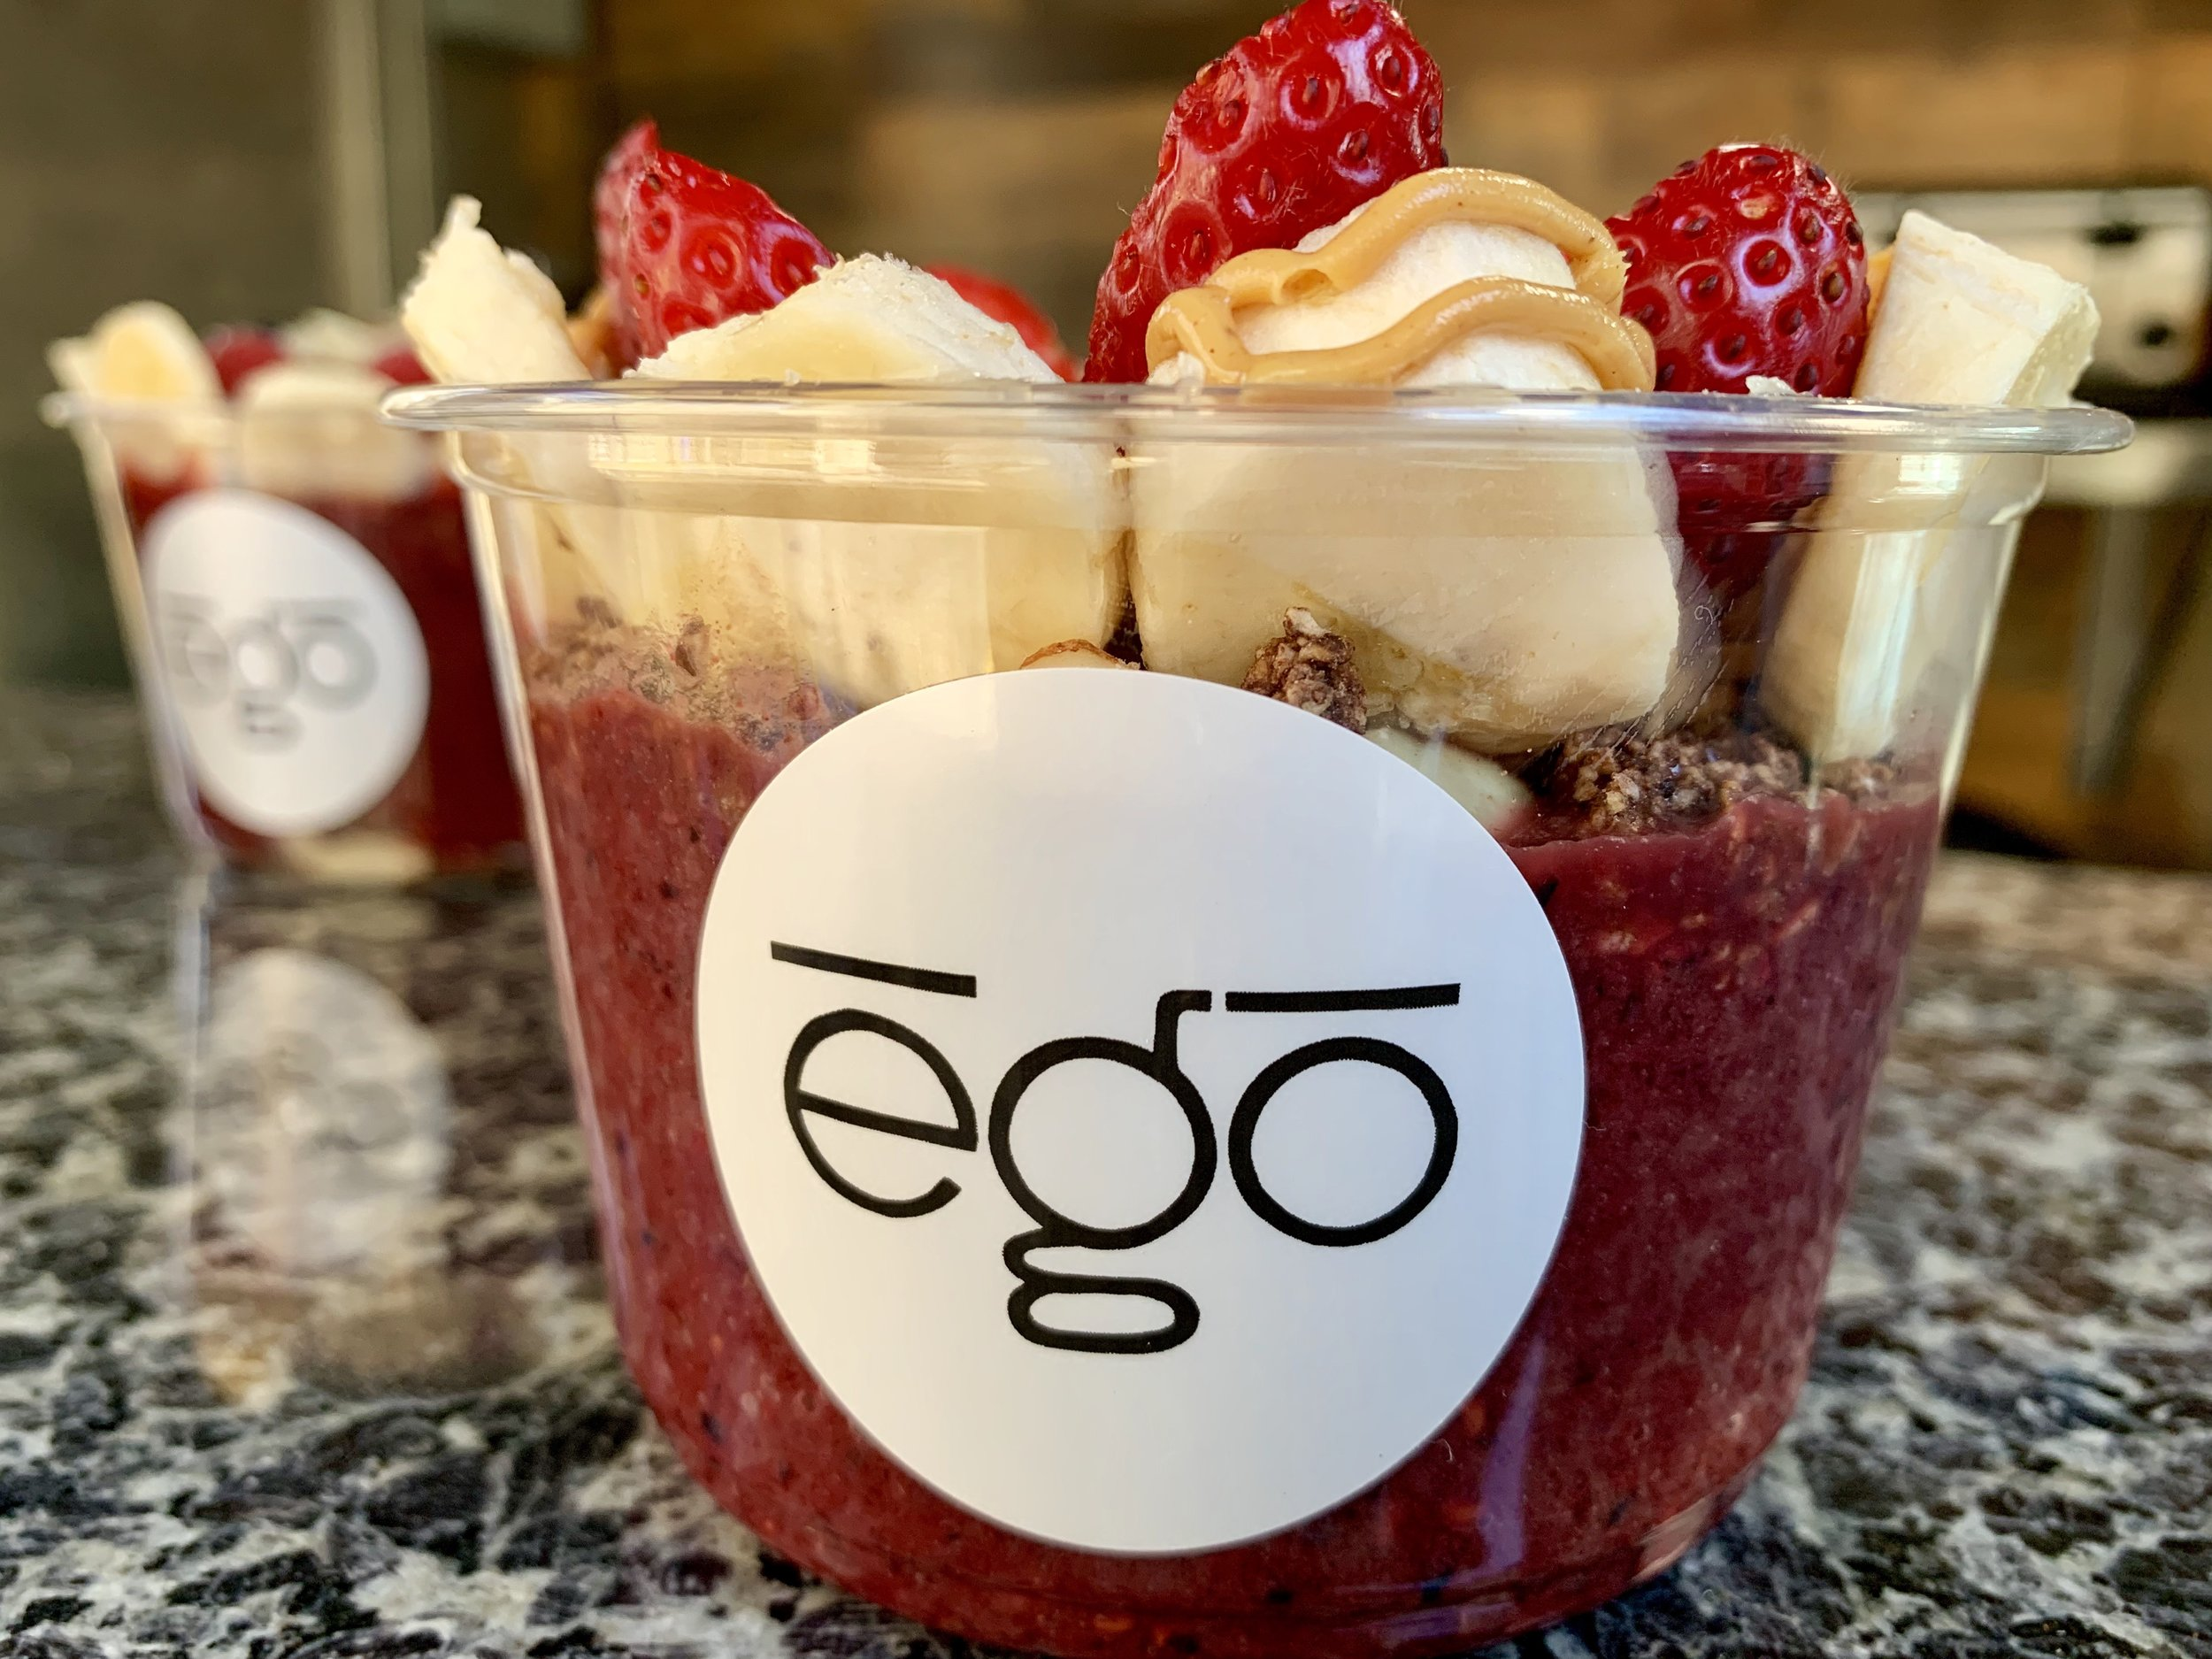 Açaí Bowl - Tambor Organic Açaí blended with bananas, berries and your choice of toppings: coconut, homemade granola, strawberries, honey, almond, chia seed, nutella, peanut butter